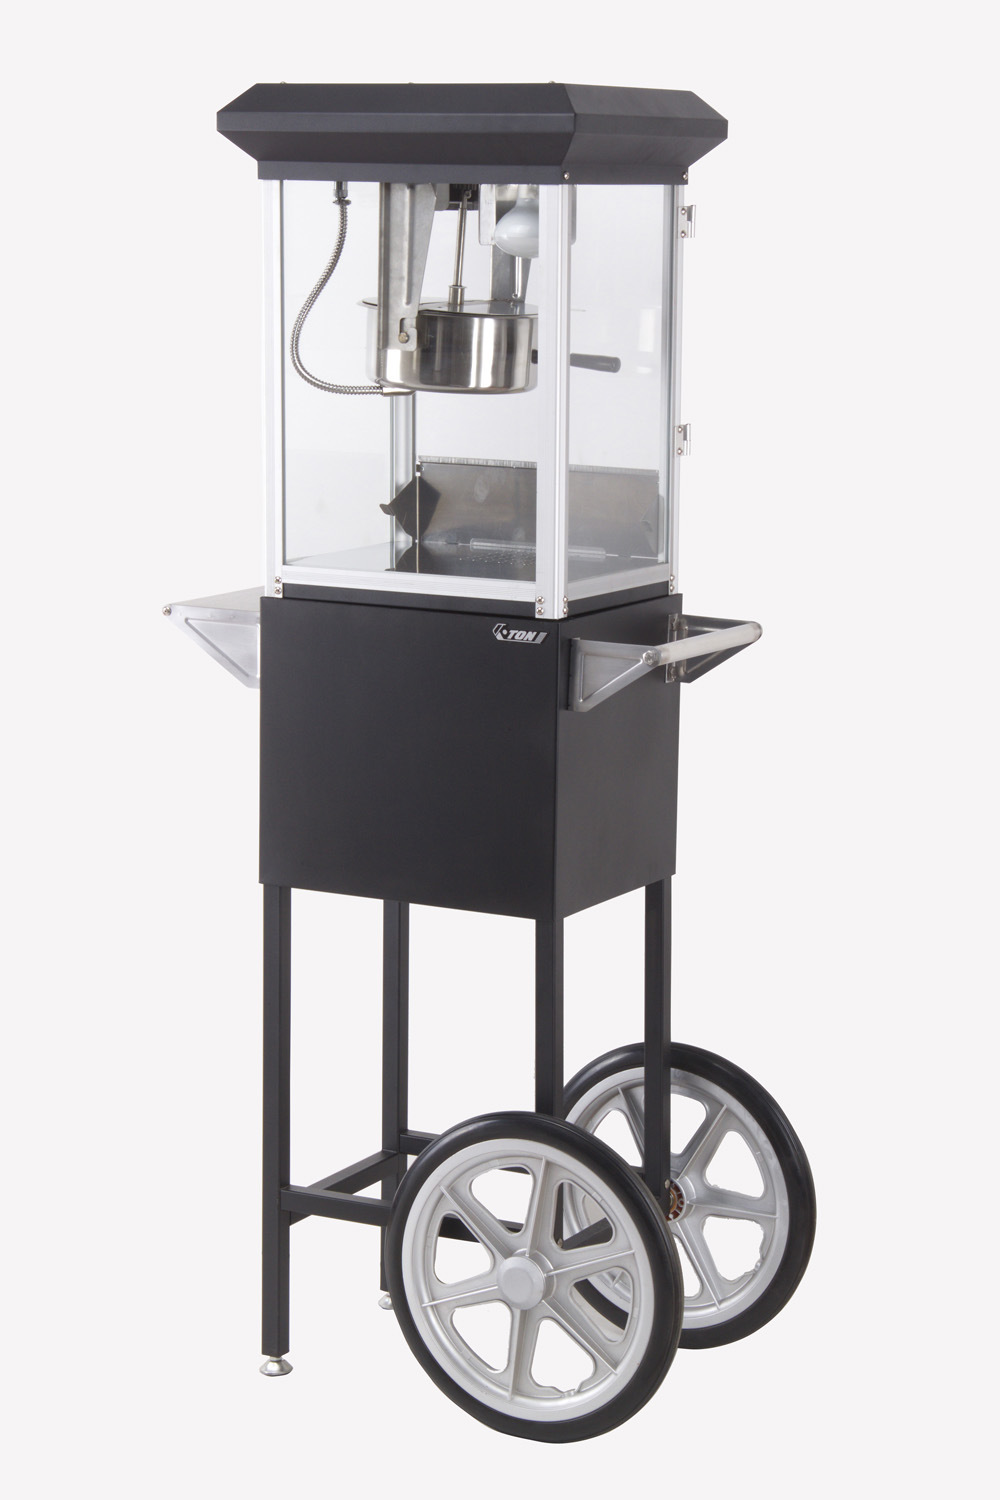 CE Approved 6oz Commercial Small Popcorn Machine with Cart